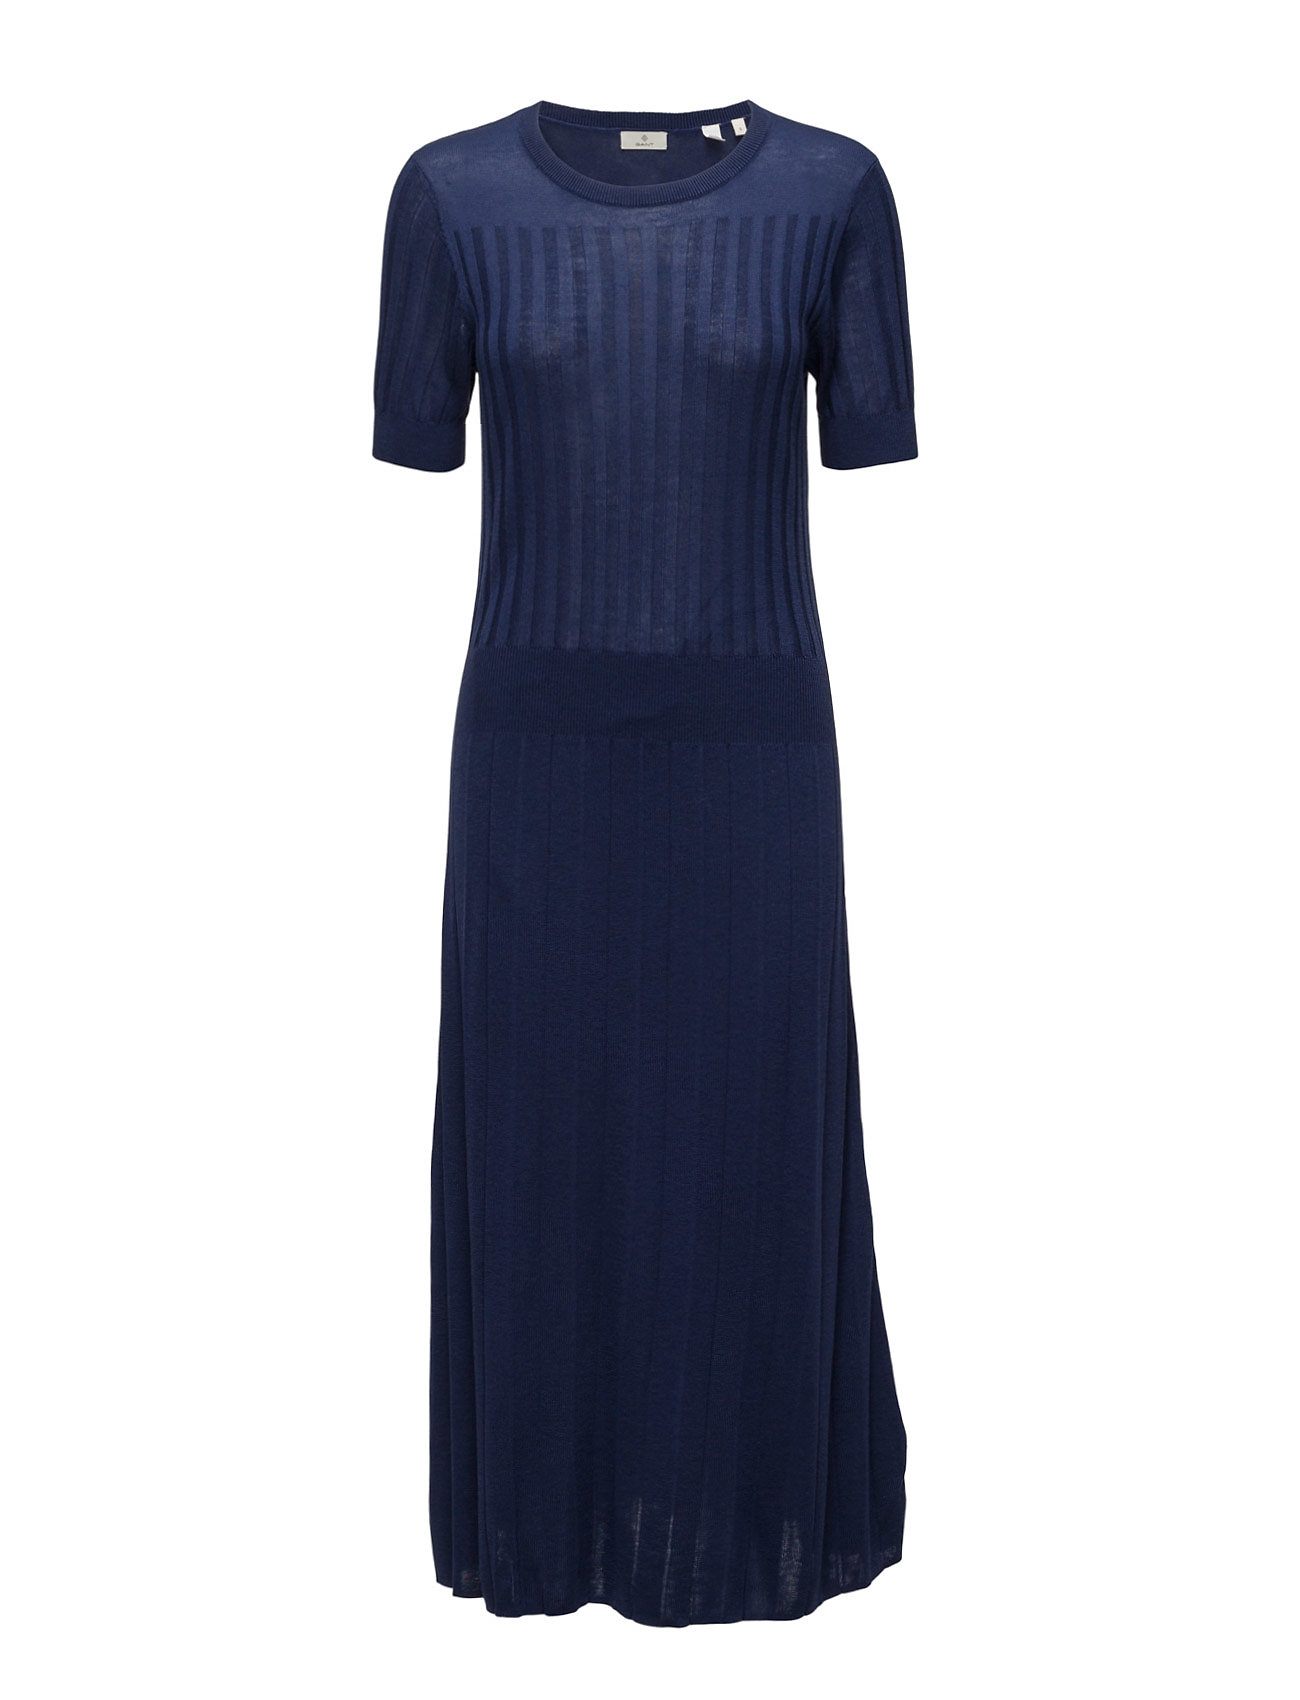 GANT Knitted Rib Dress - Persian Blue GANT Free Shipping Manchester Great Sale 32dbTe